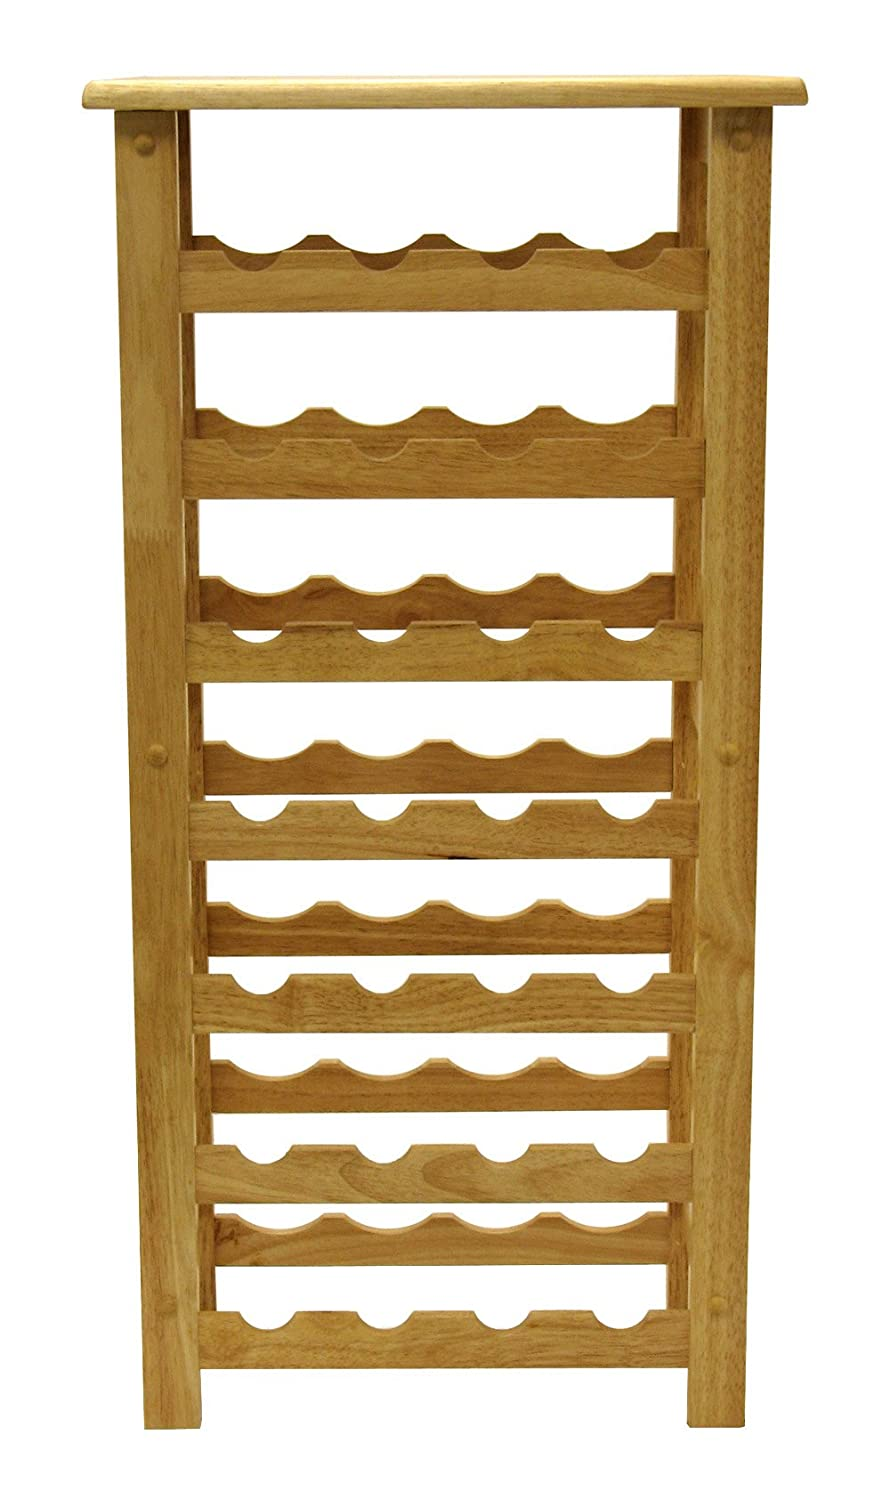 redwood wine rack plans